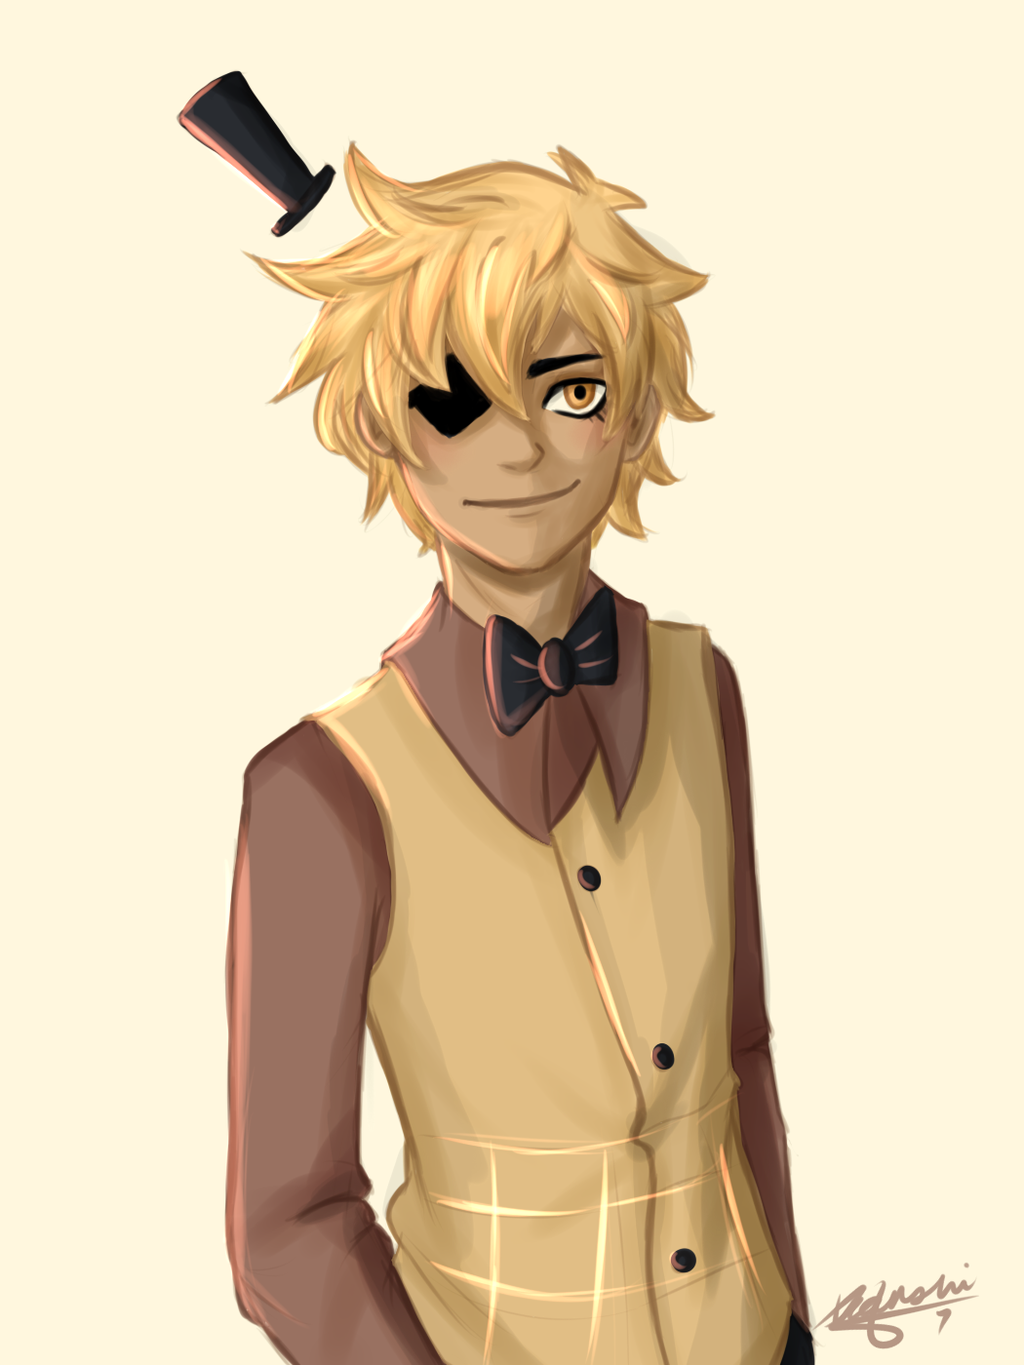 do u think Bill Cipher is cute